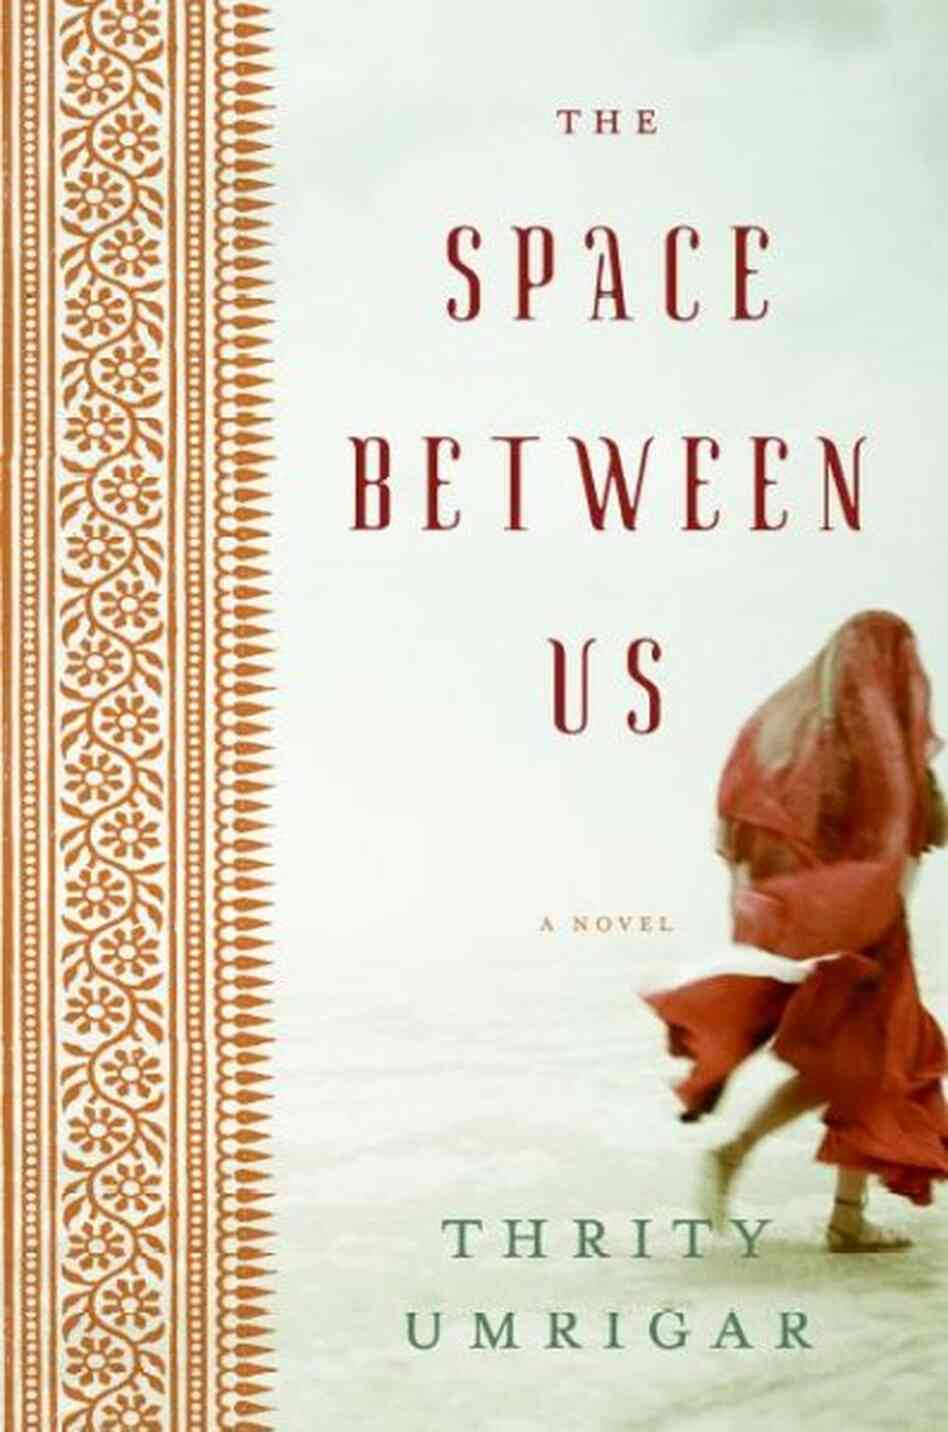 The Space Between Us' by Thrity Umrigar : NPR